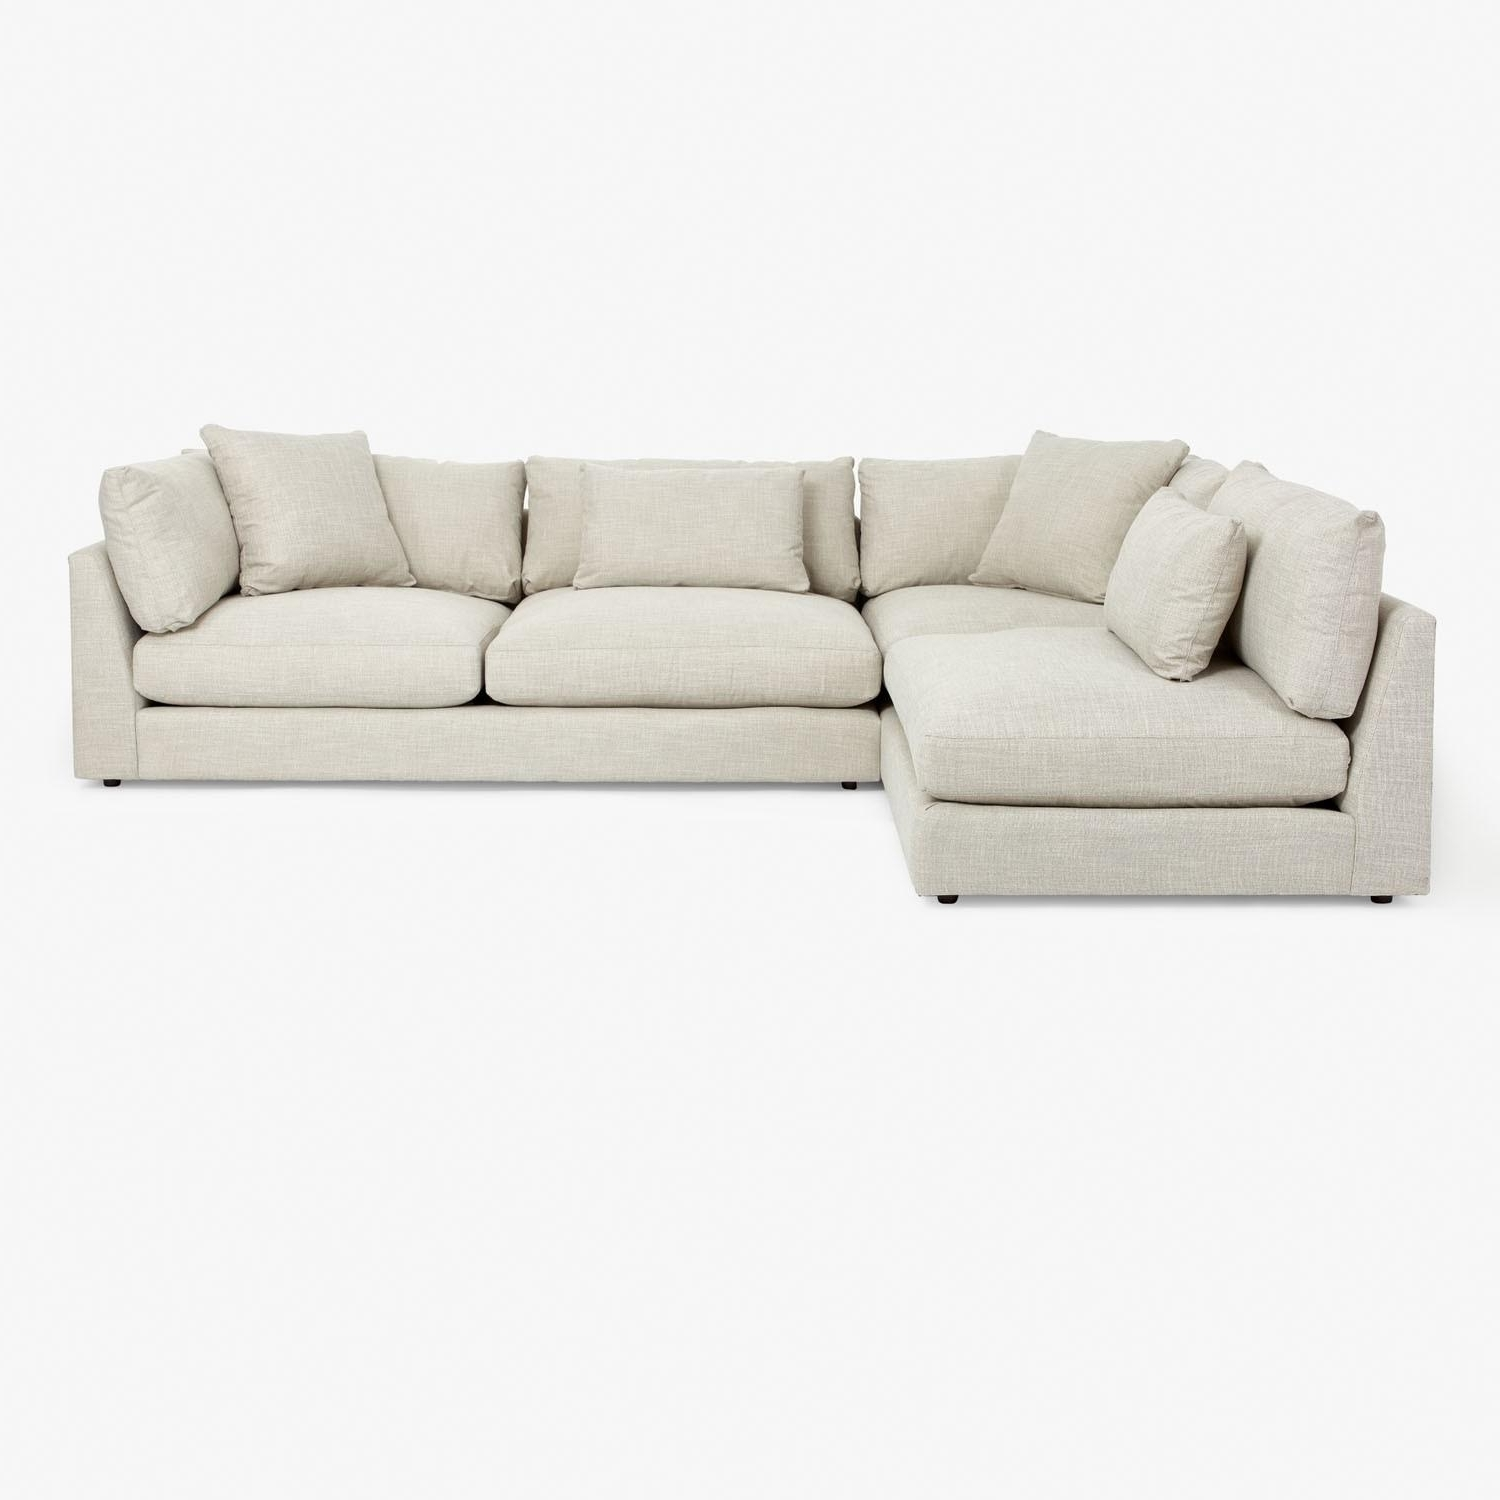 Recent Nyc Sectional Sofas Regarding Modern Sectional Sofas For Nyc Apartments At Abc Home (View 18 of 20)